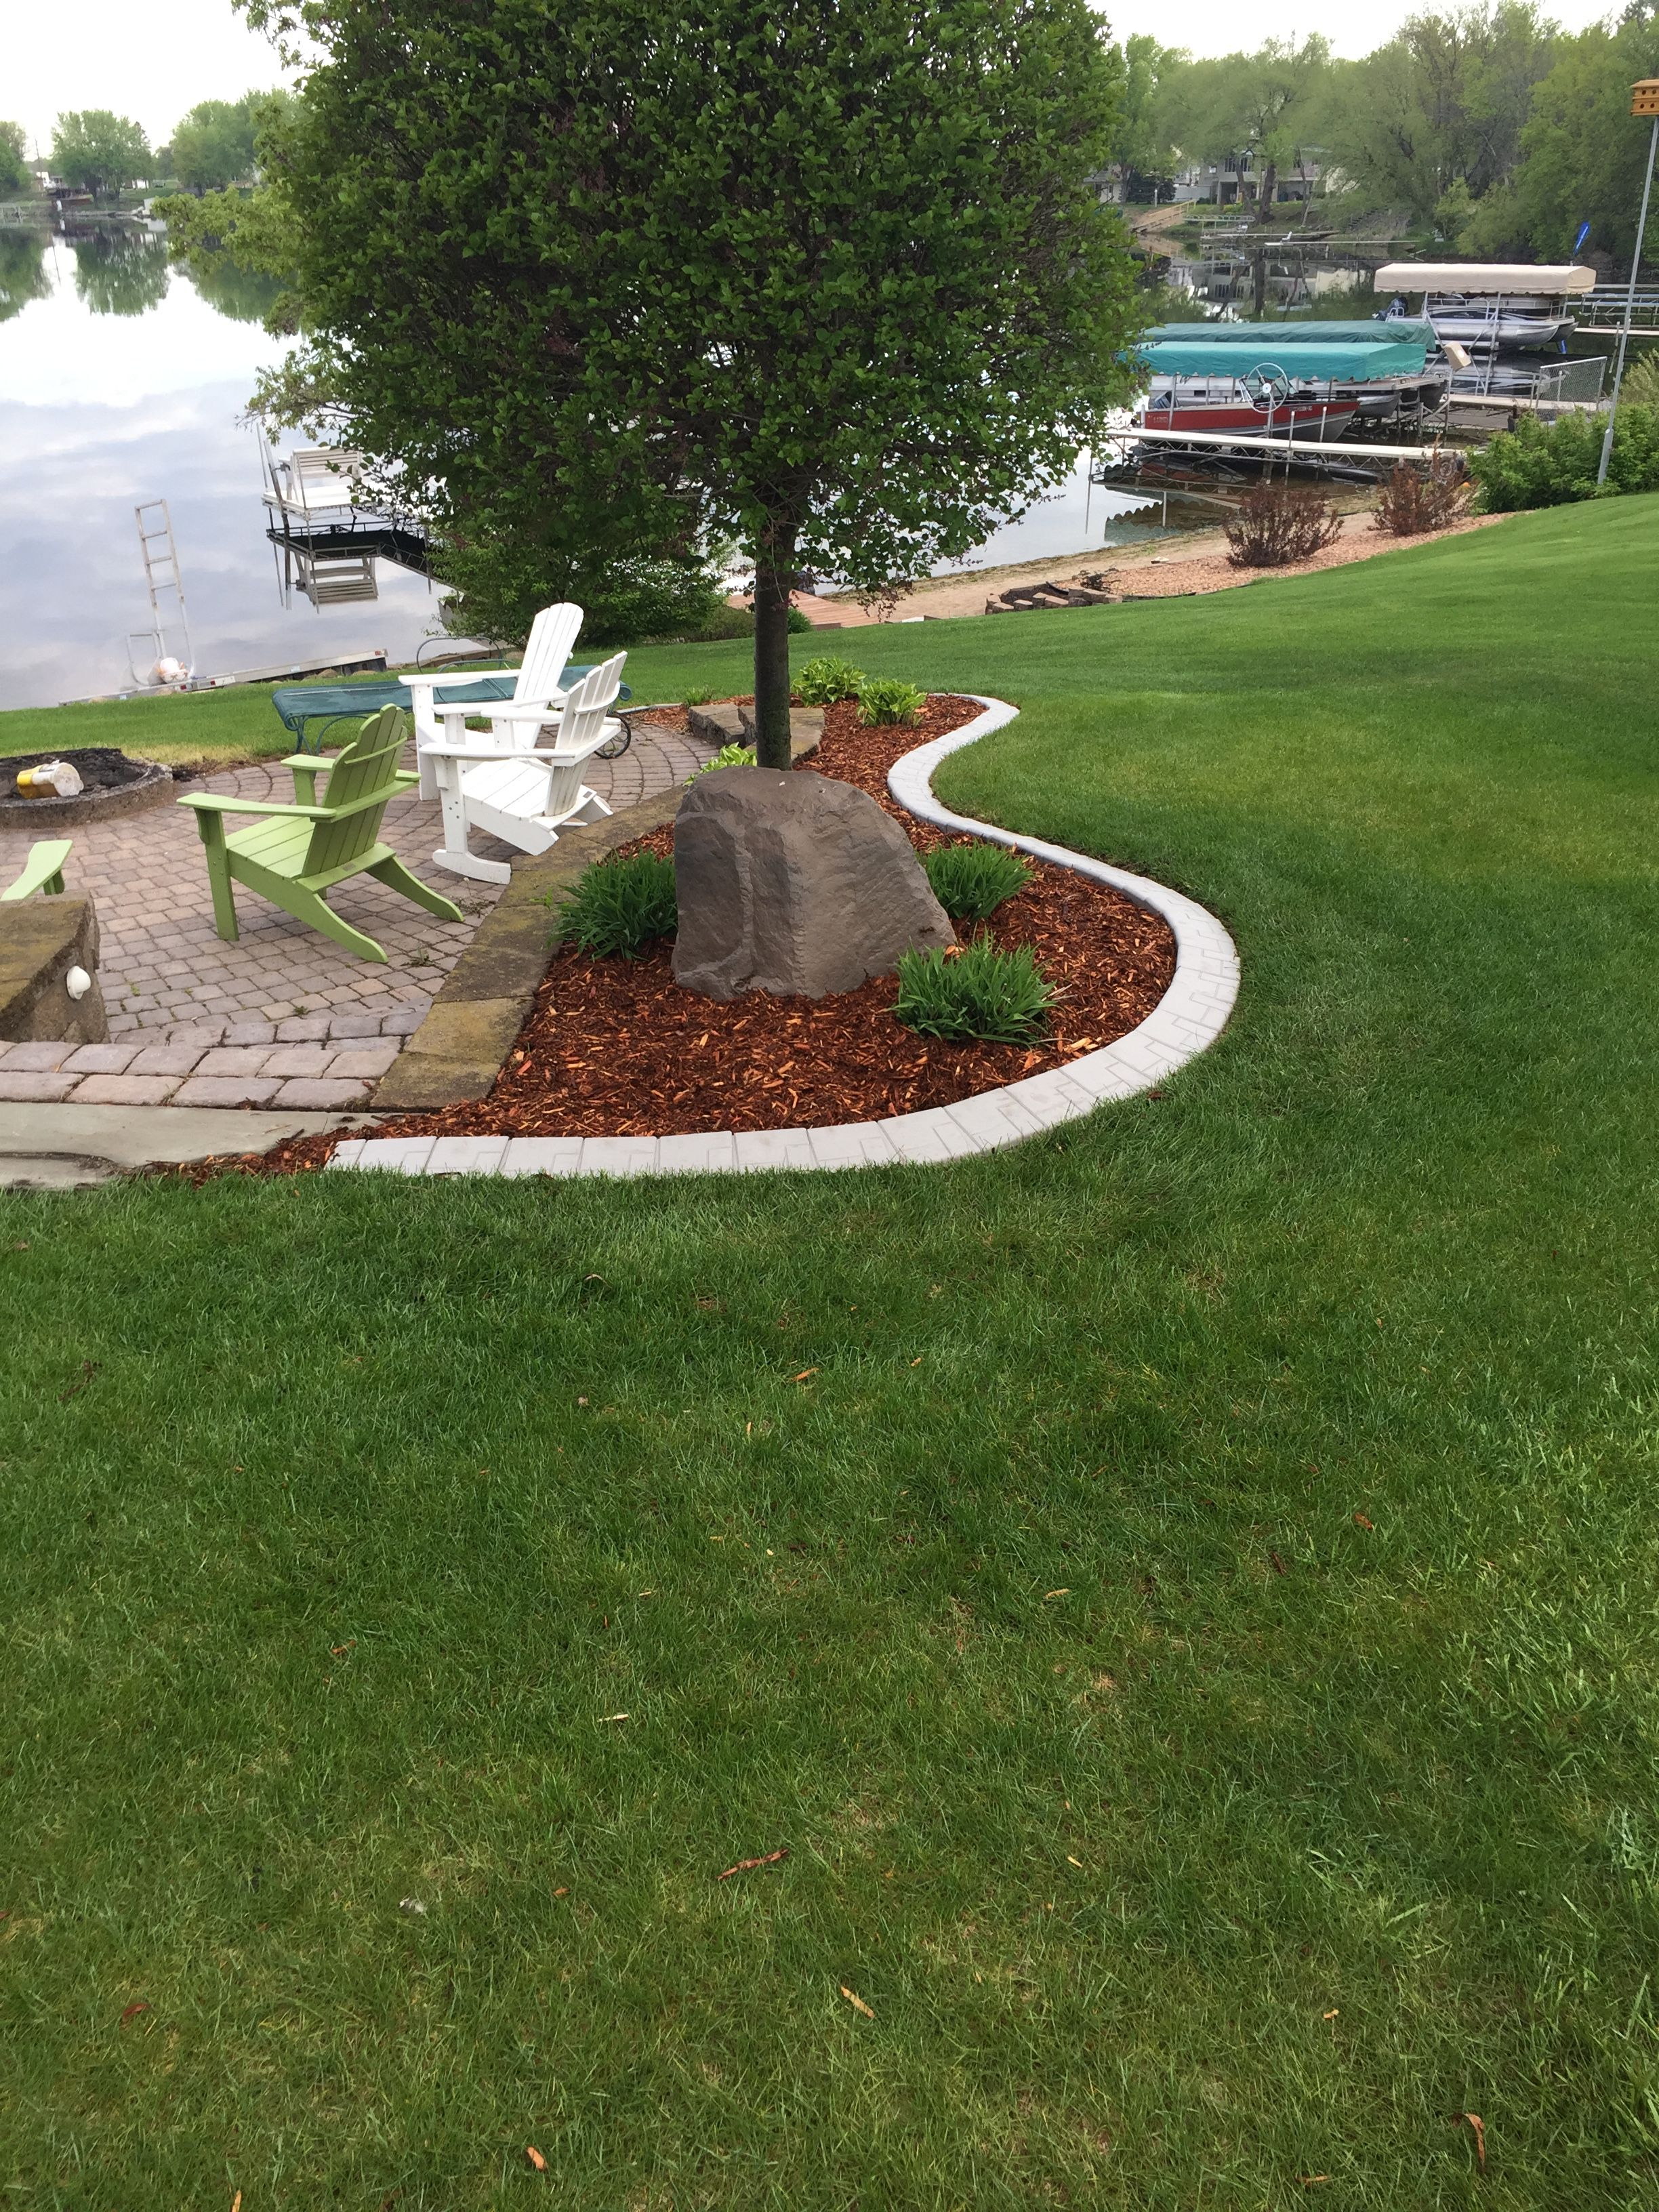 This Faux Concrete Edging Was Created Using Master Mark Quick Curb New Product Gives